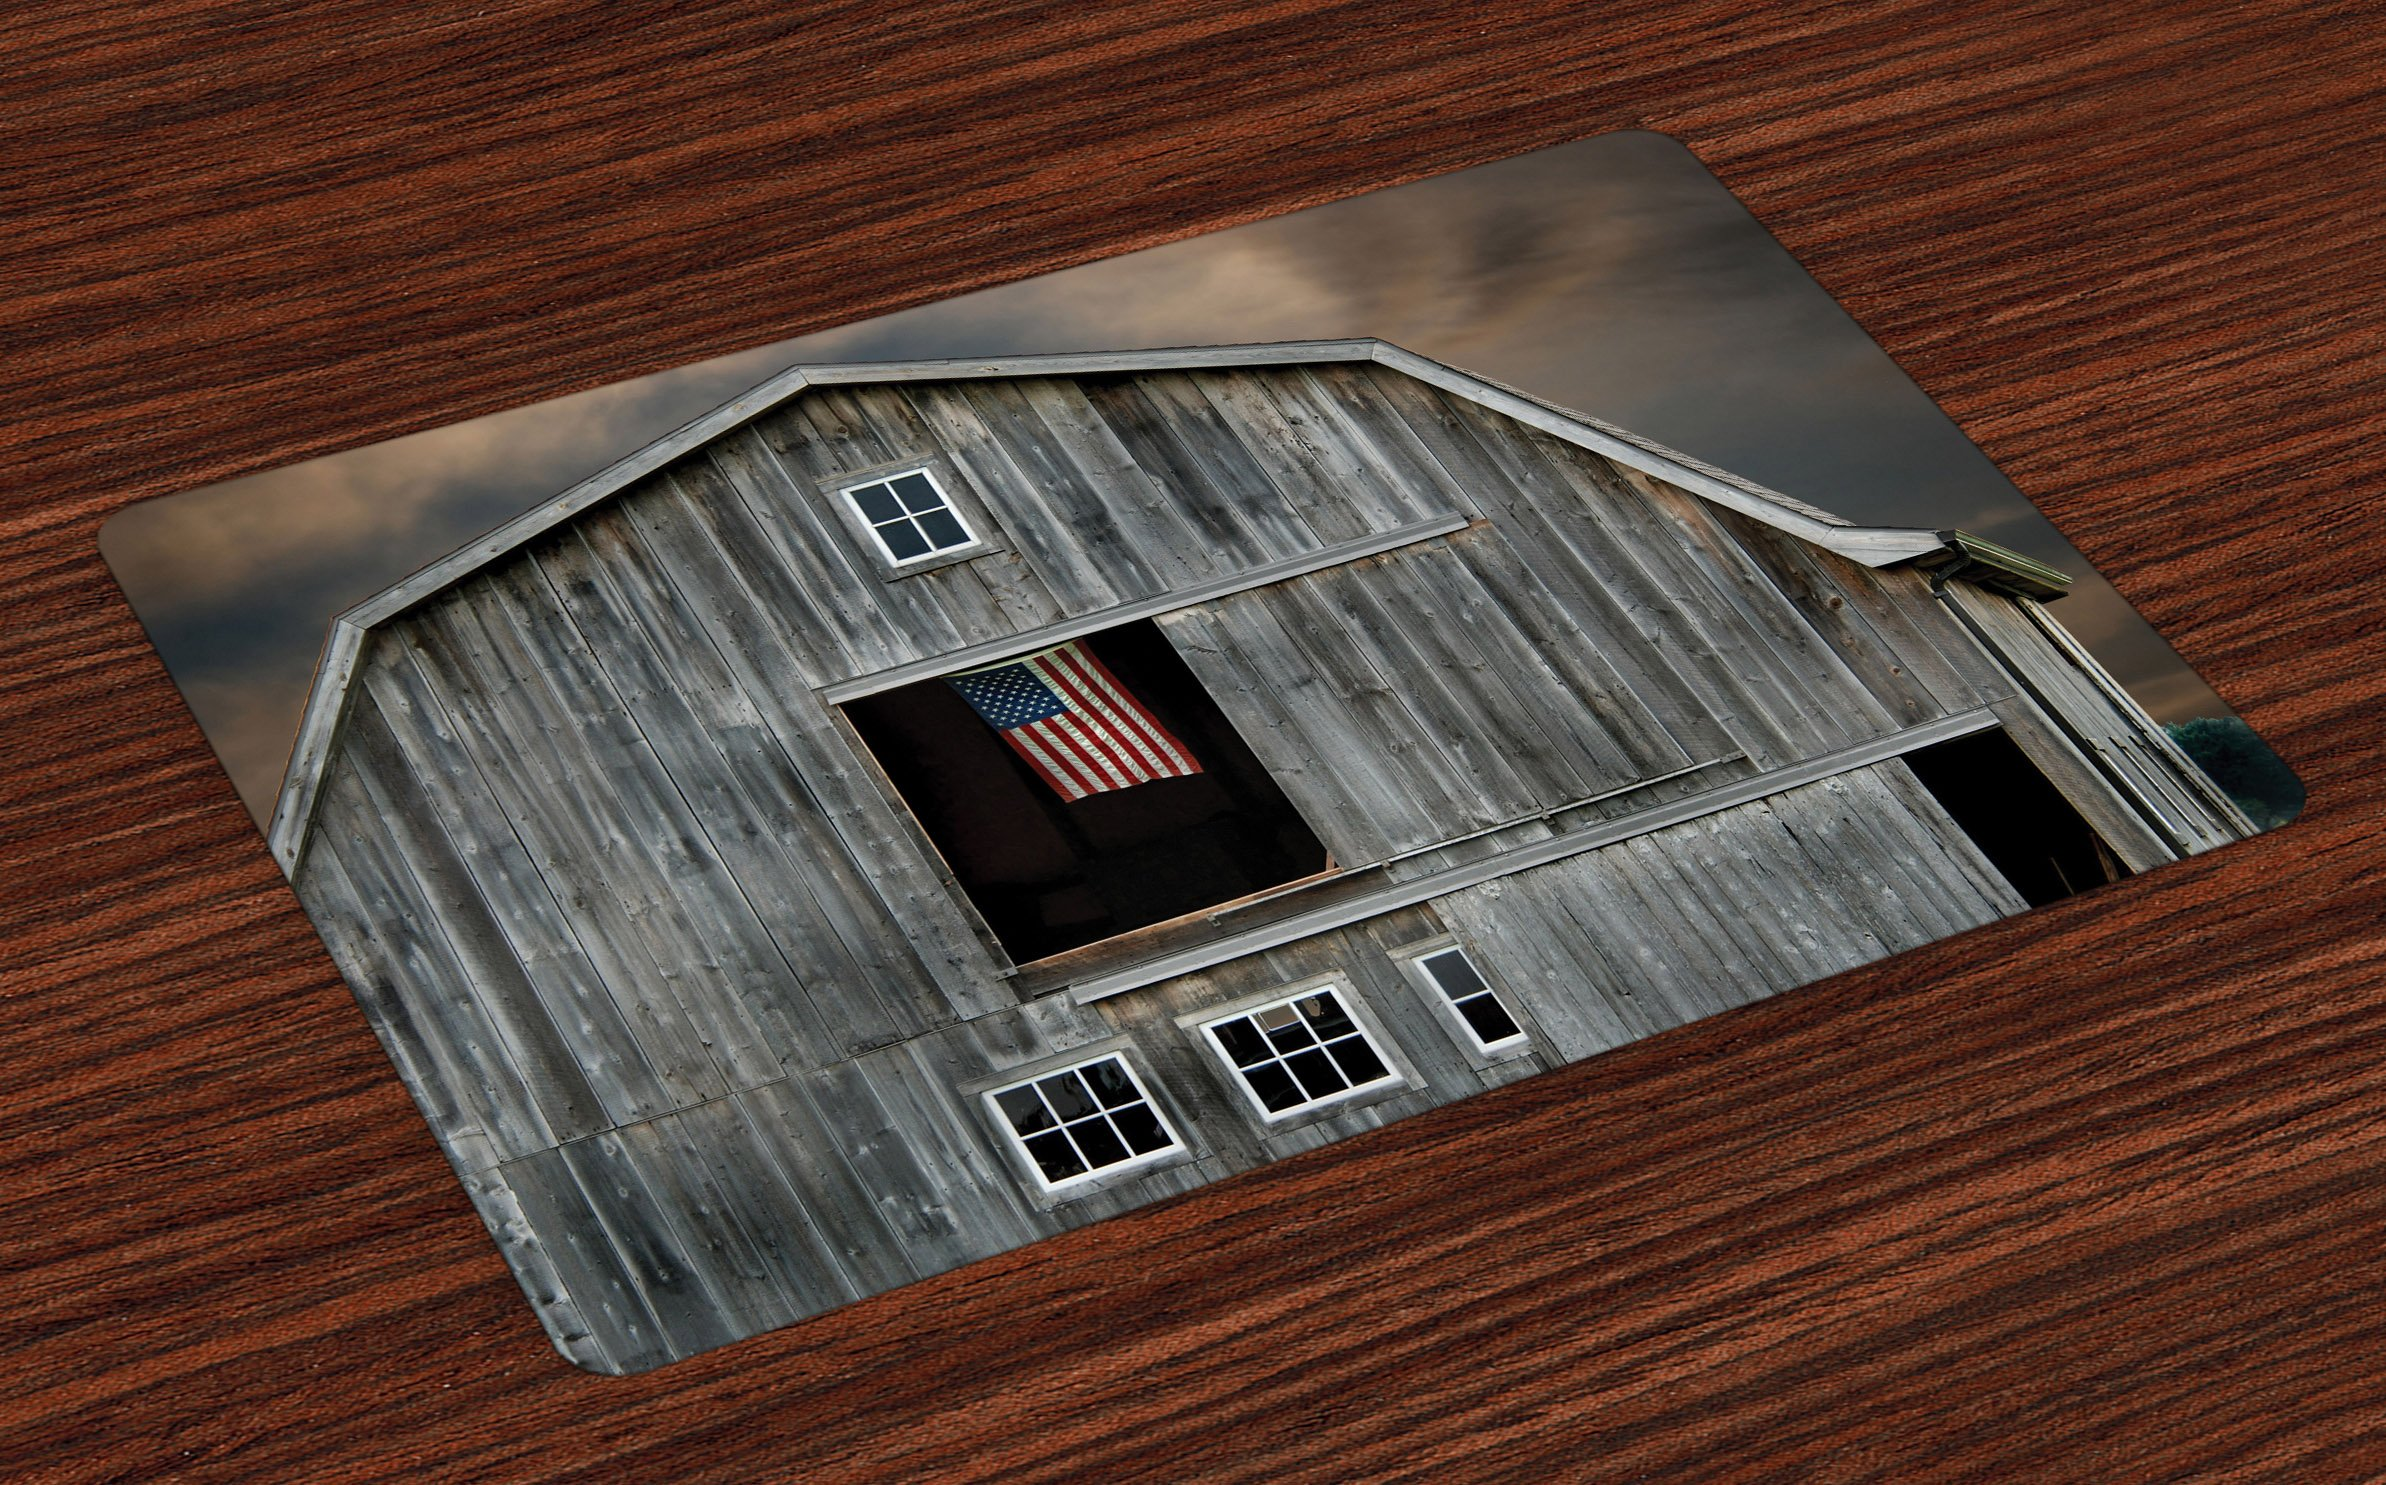 Lunarable American Flag Place Mats Set of 4, American Flag Flying in Hayloft Window Wooden Old House Dark Evening View, Washable Fabric Placemats for Dining Room Kitchen Table Decor, Grey Tan Black